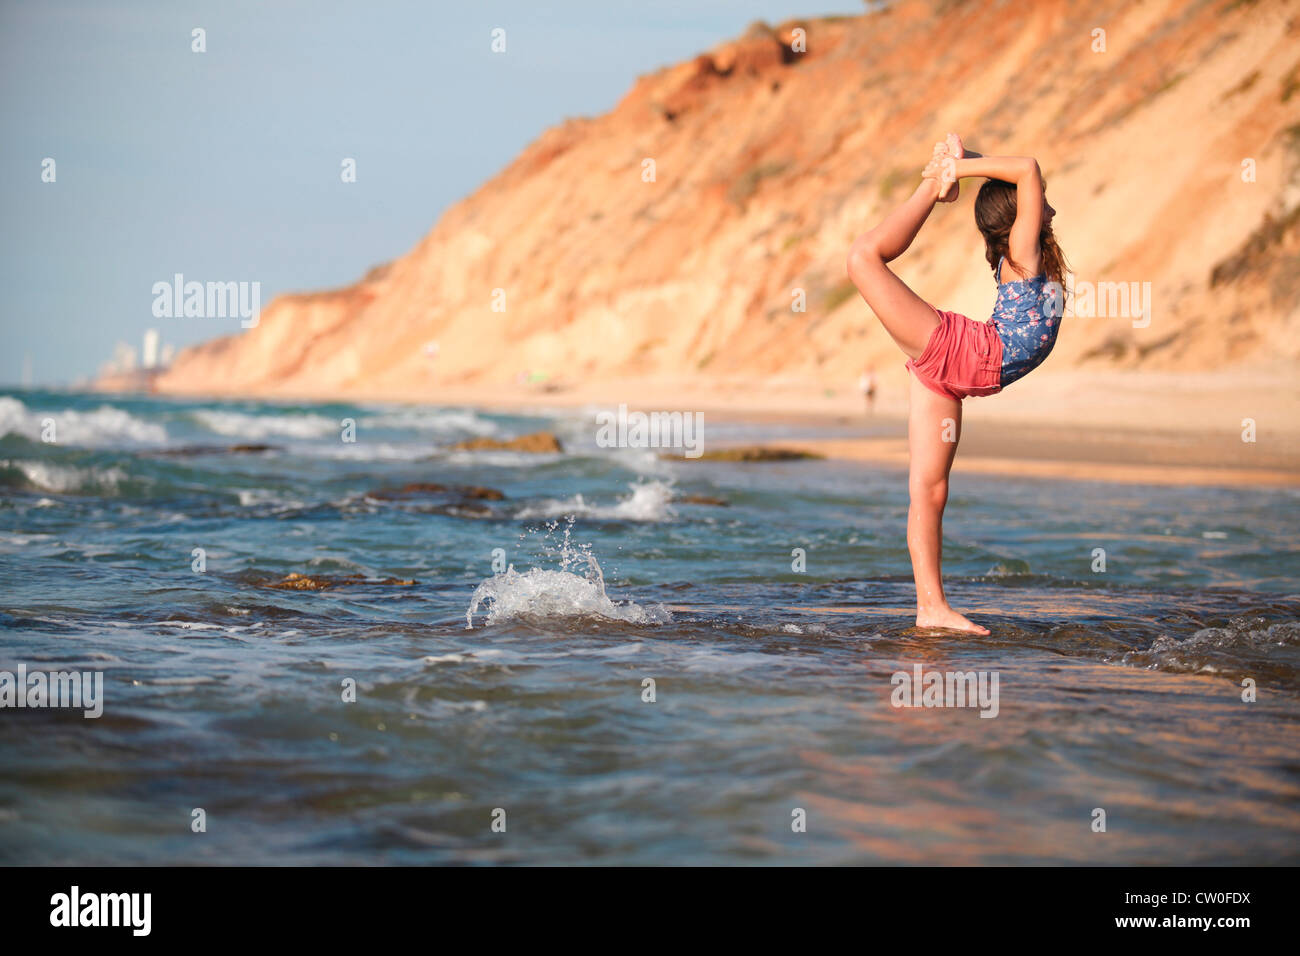 Woman practicing yoga on beach - Stock Image